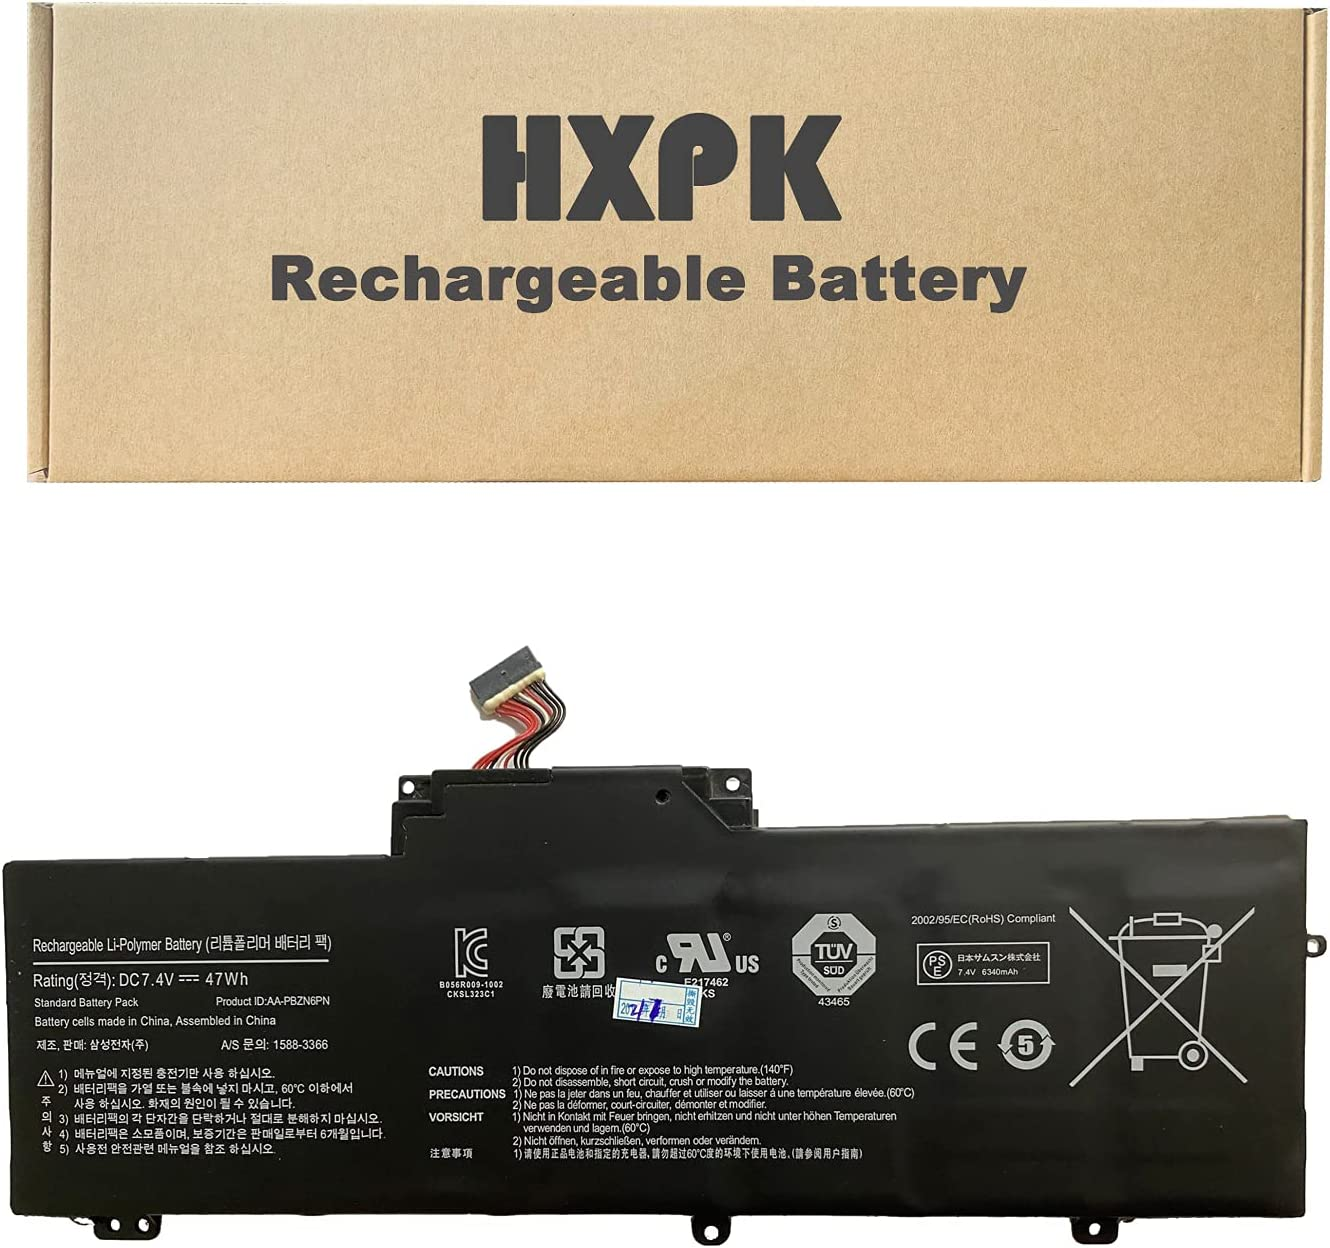 HXPK AA-PBZN6PN Laptop Battery Max 56% OFF low-pricing for Samsung NP350U2A-A 350U2B-A05